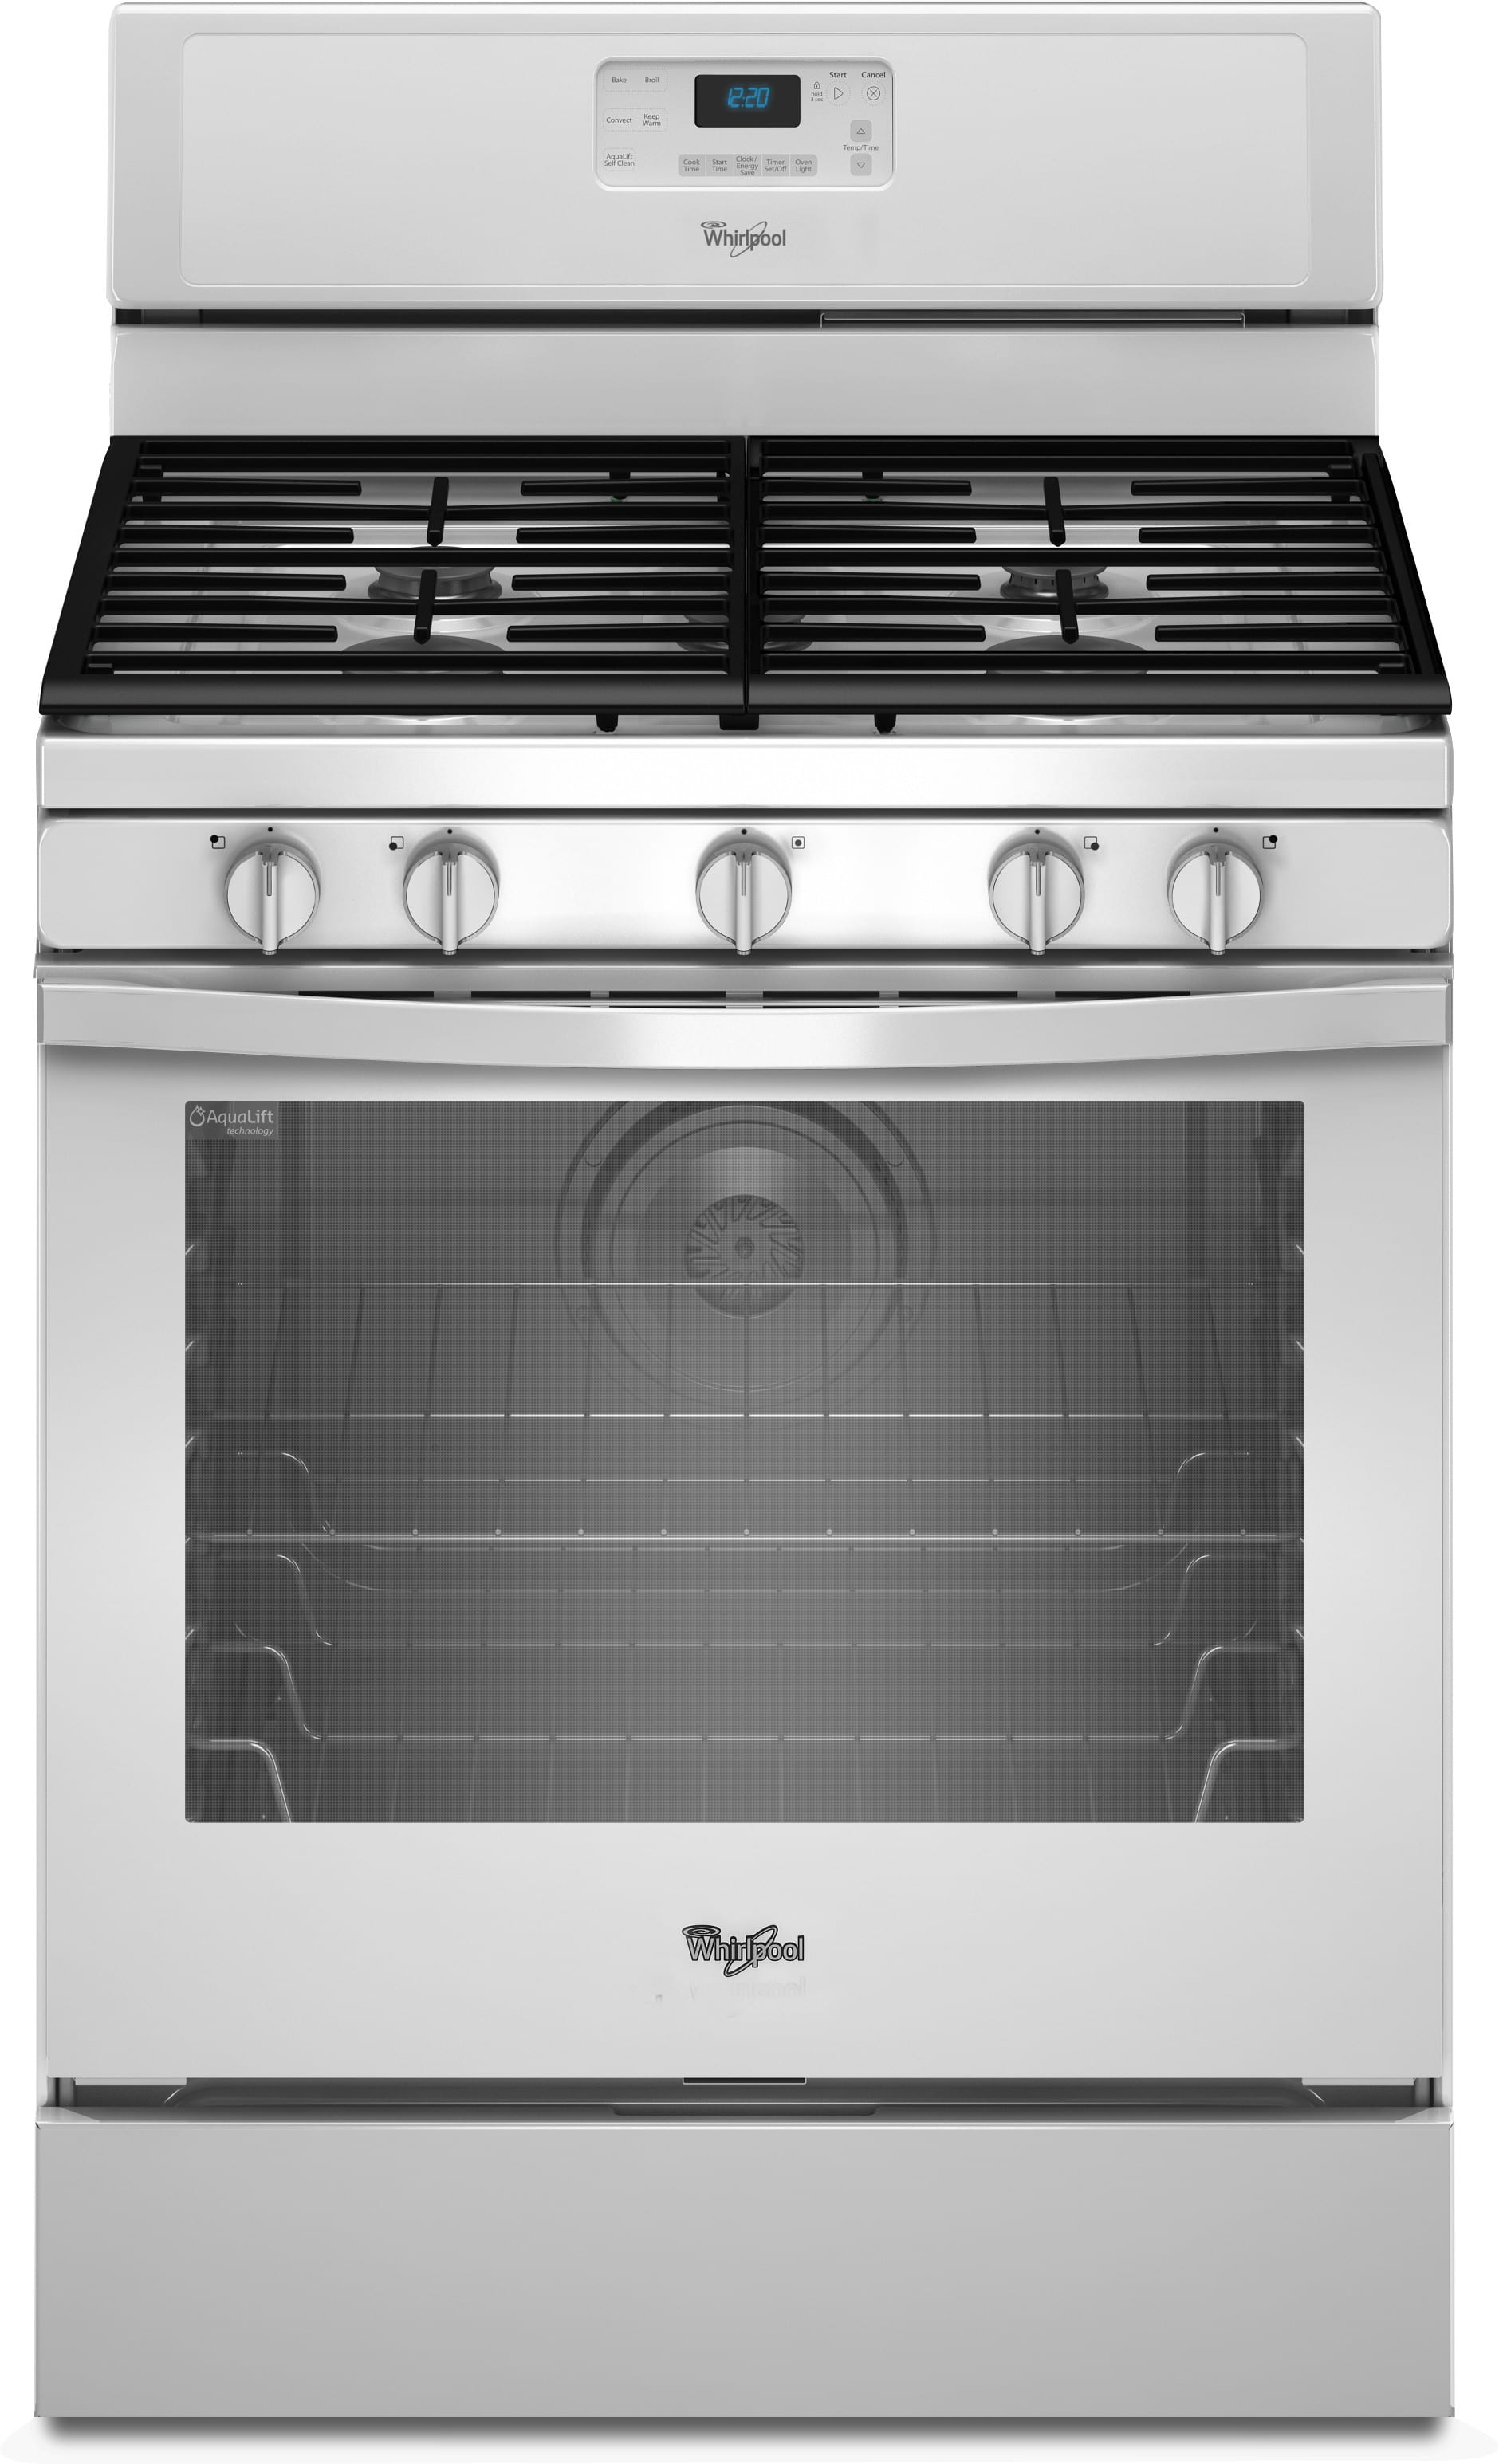 Whirlpool Wfg540h0ew 30 Inch Freestanding Gas Range With